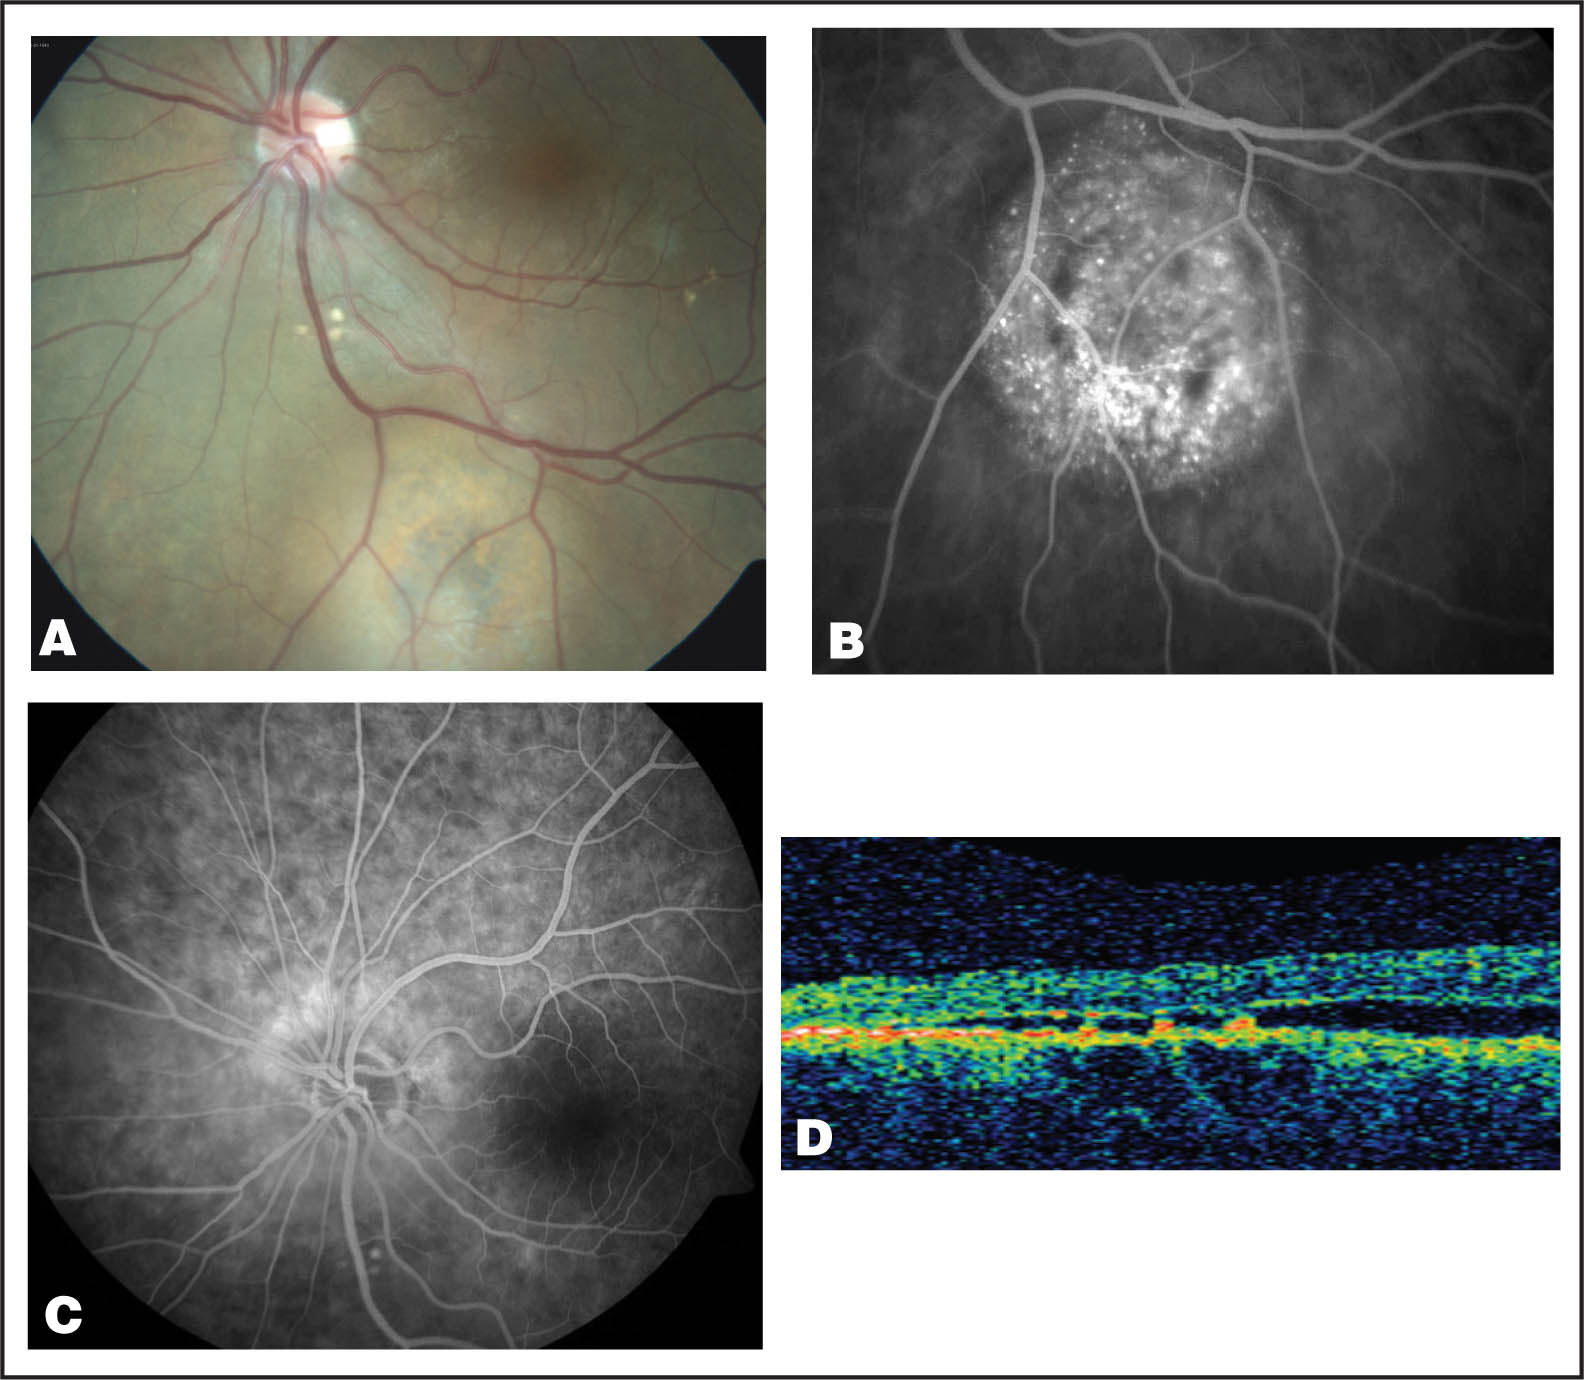 (A) Left Fundus View Shows a Solitary Melanocytic Lesion Below the Inferior Vascular Arcade. (B) On Late Phase Fluorescein Angiography, There Are Multiple Pinpoint Foci of Hyperfluorescence. (C) Fluorescein Angiography Depicts an ill-Defined Area of Small Confluent Islands of Hypofluorescence and Hyperfluorescence. (D) Optical Coherence Tomography of the Same Area Shows Hyperreflective Elements over a Local Area of Retinal Pigment Epithelial Loss.